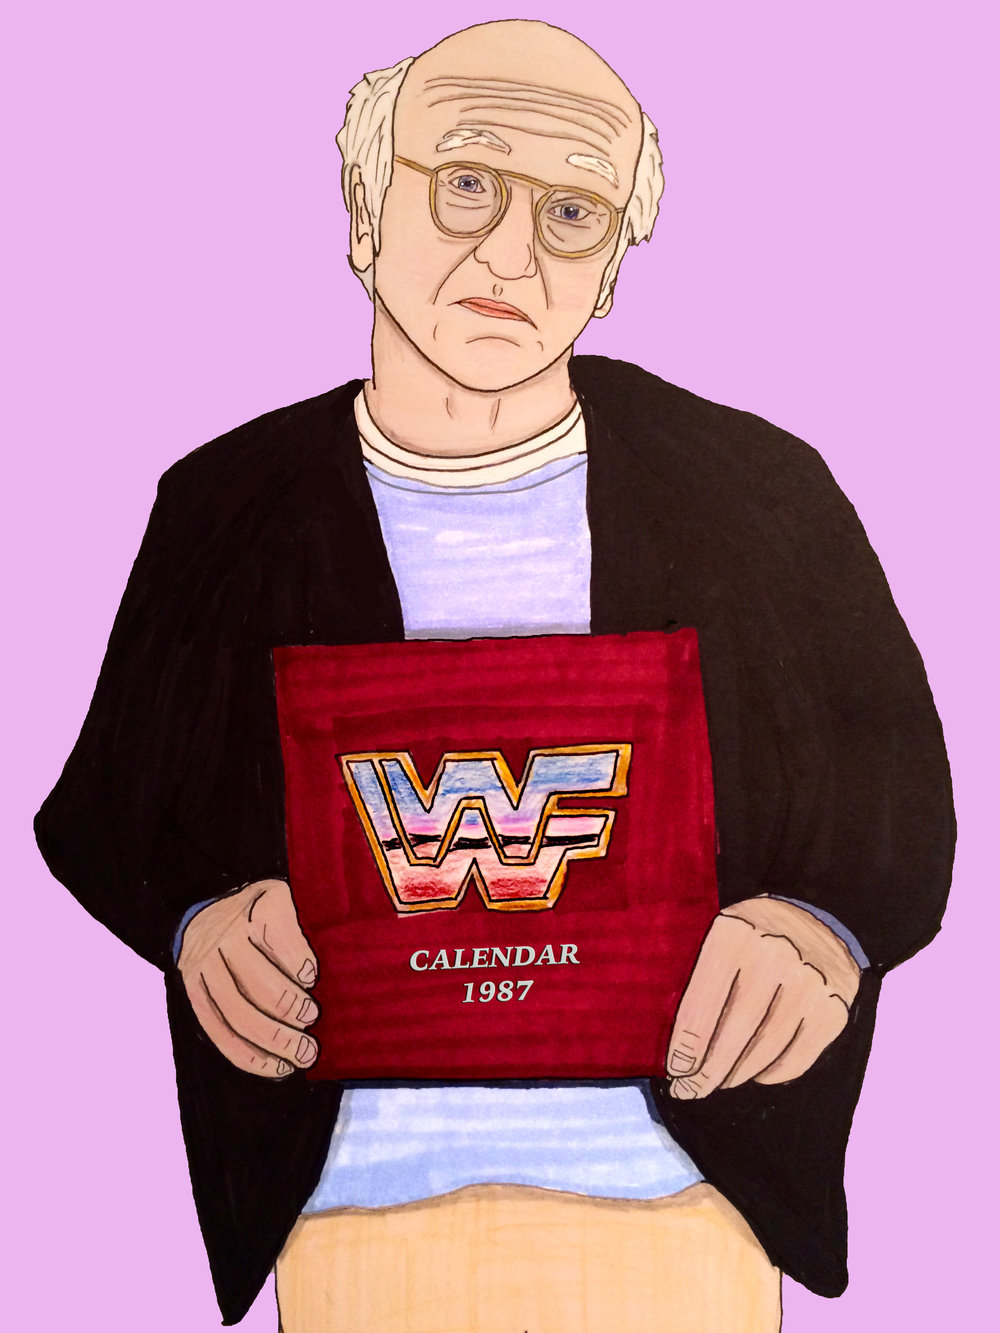 Larry David`s favorite thing in the world.